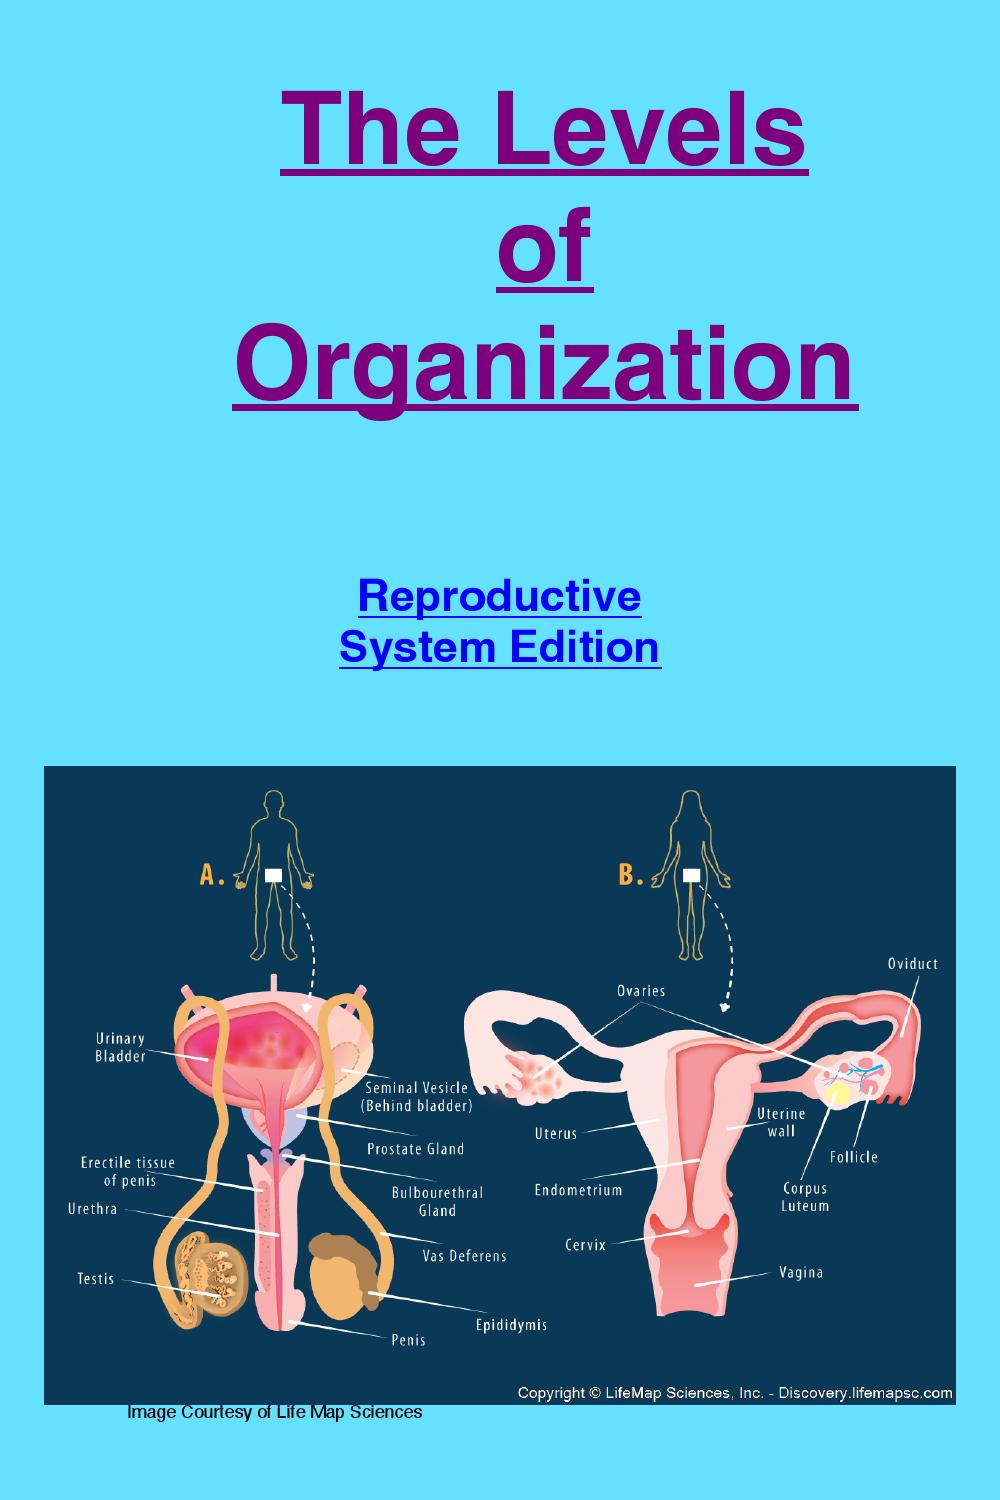 The Levels Of Organization Of The Reproductive System By Deepa